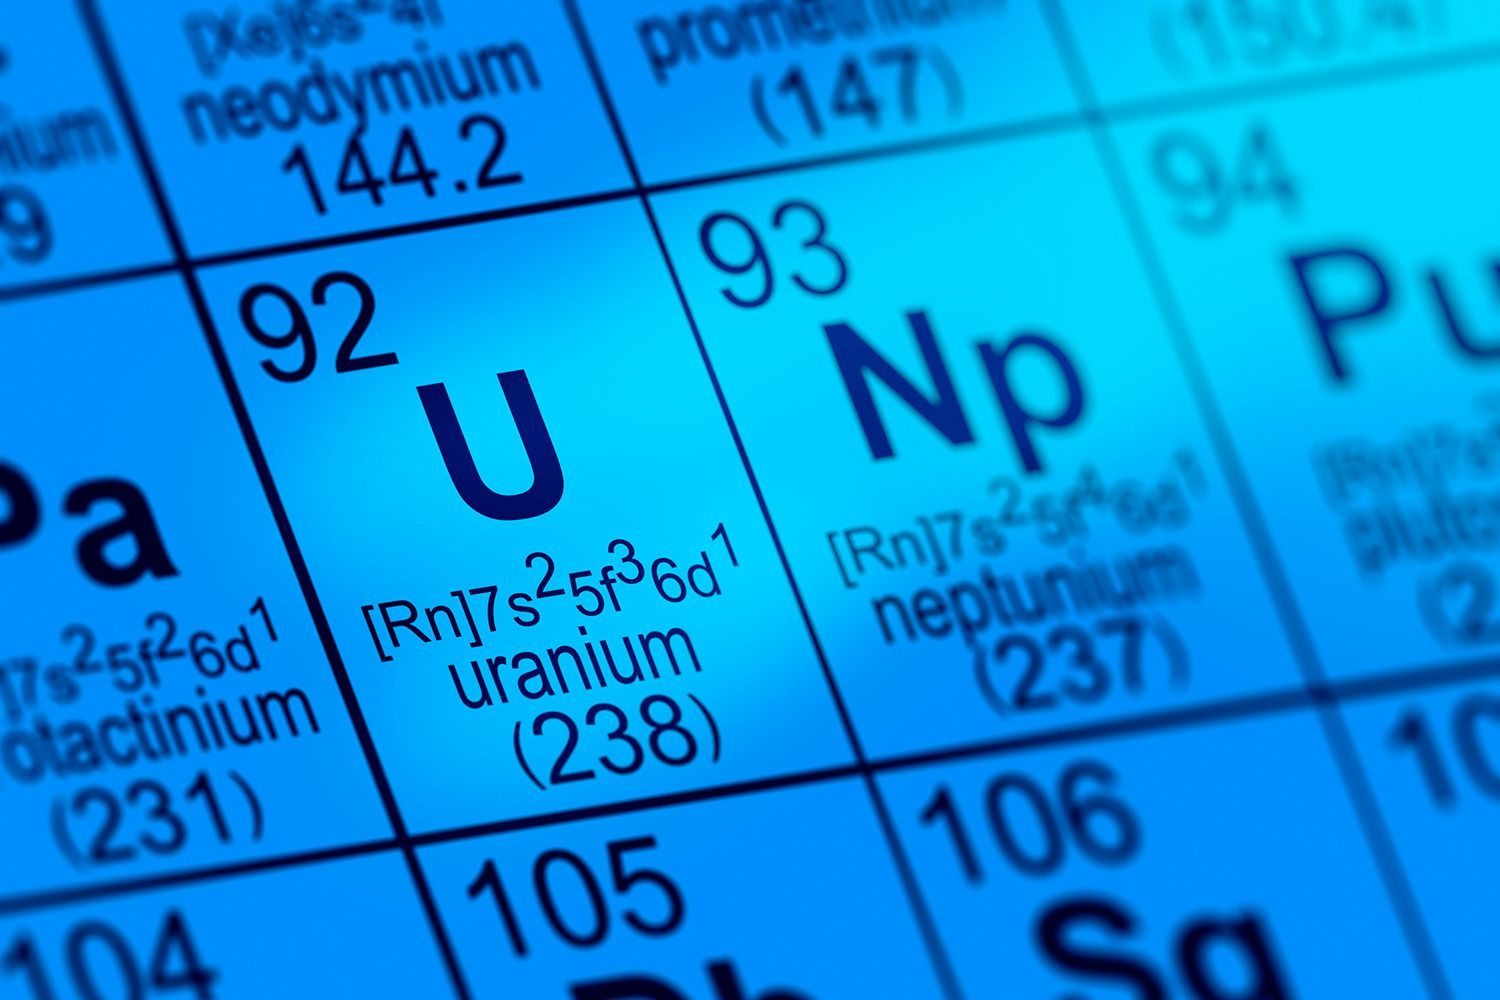 Element symbols list abbreviations for chemical elements which elements are radioactive urtaz Gallery